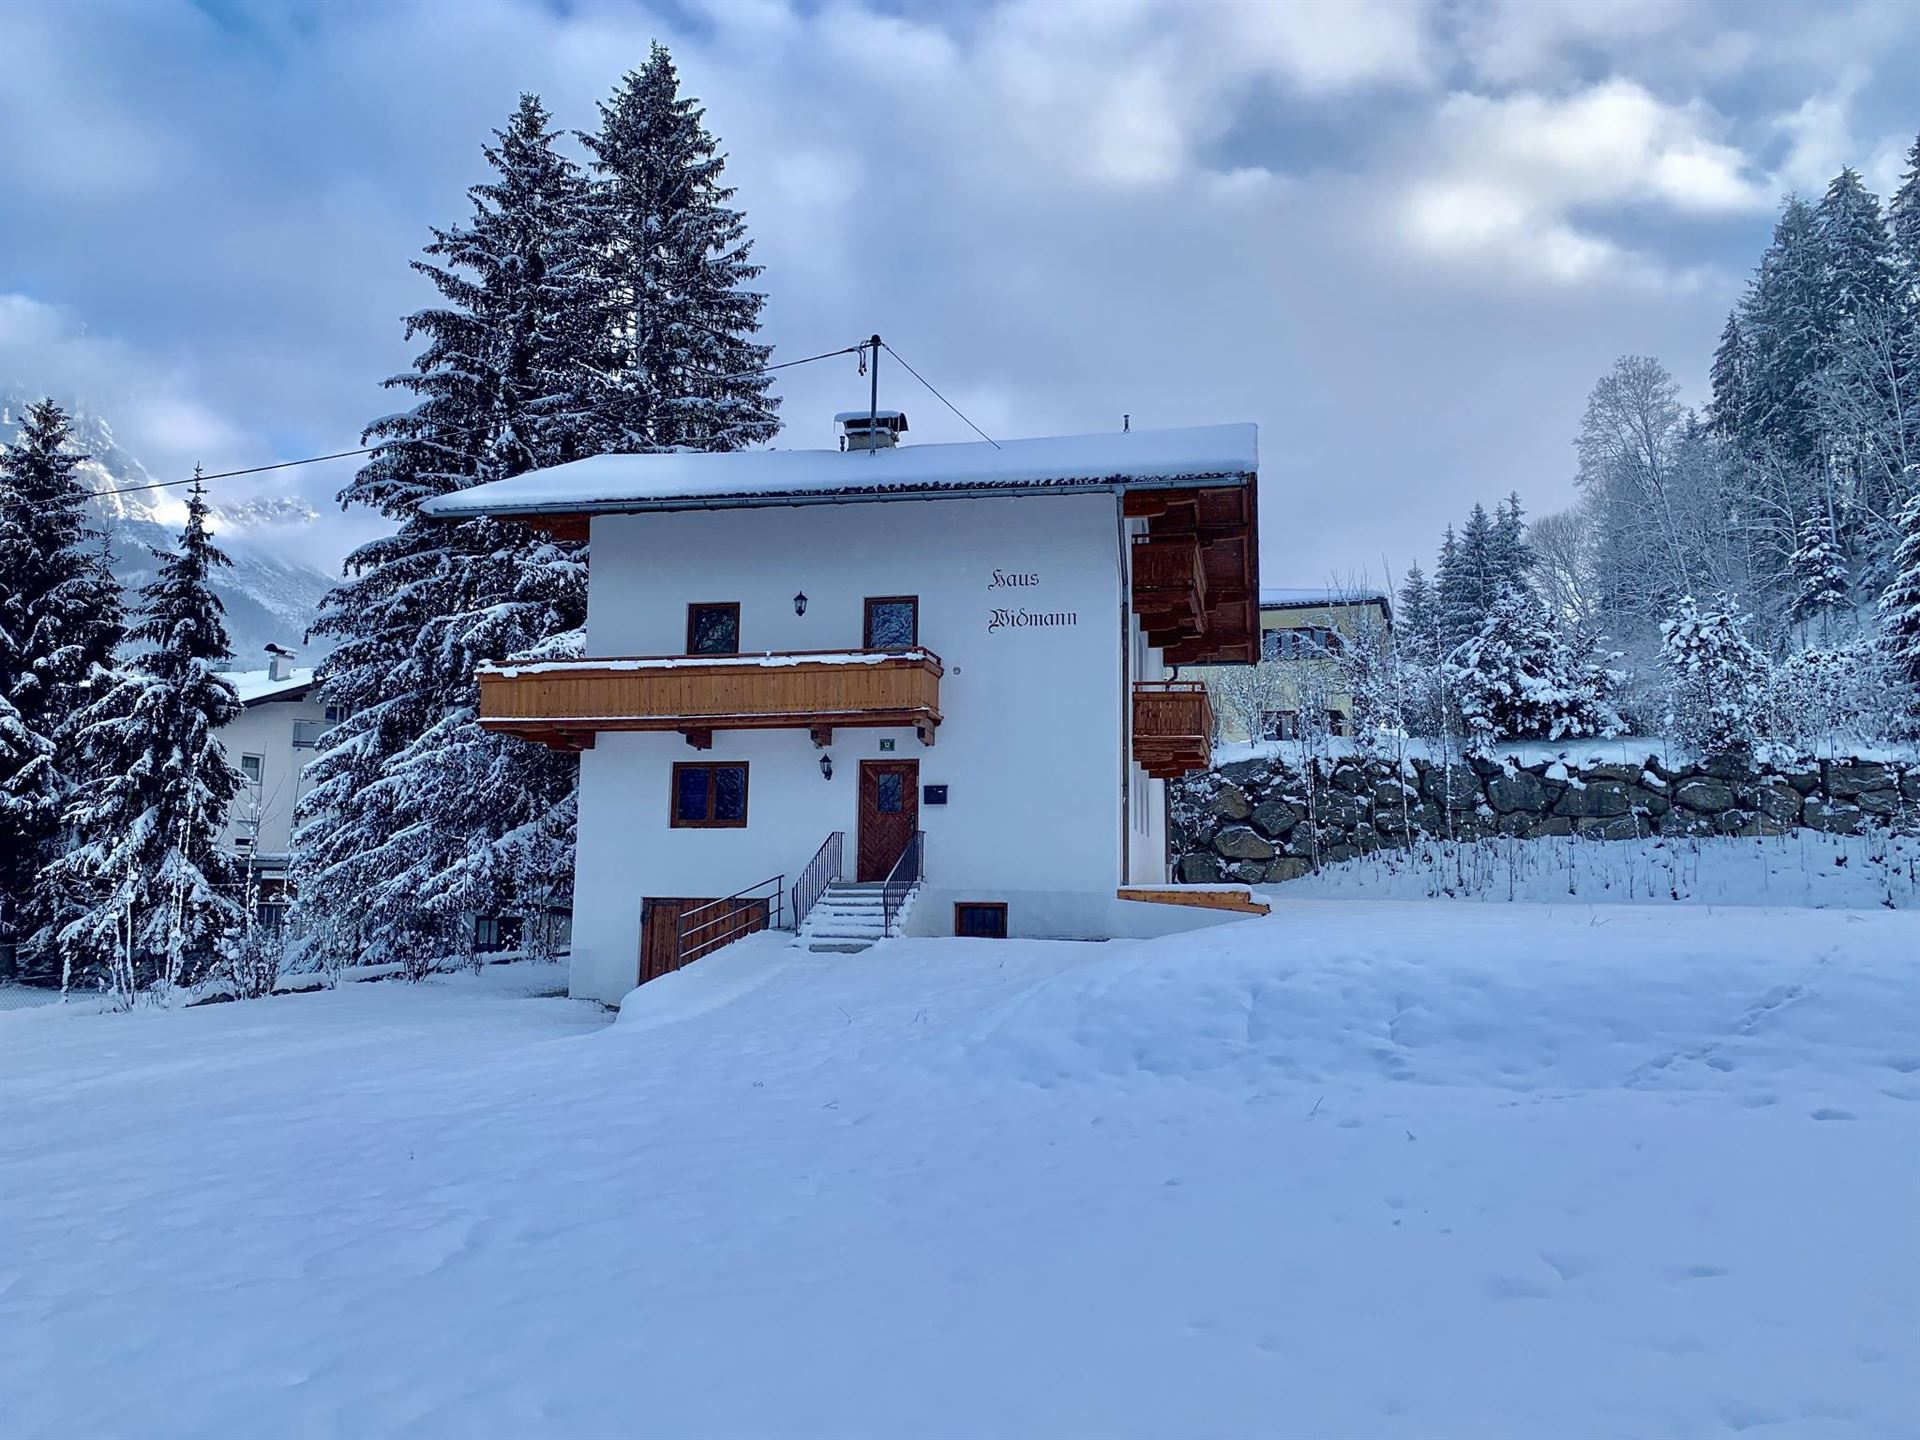 Haus Widmann Winter 4